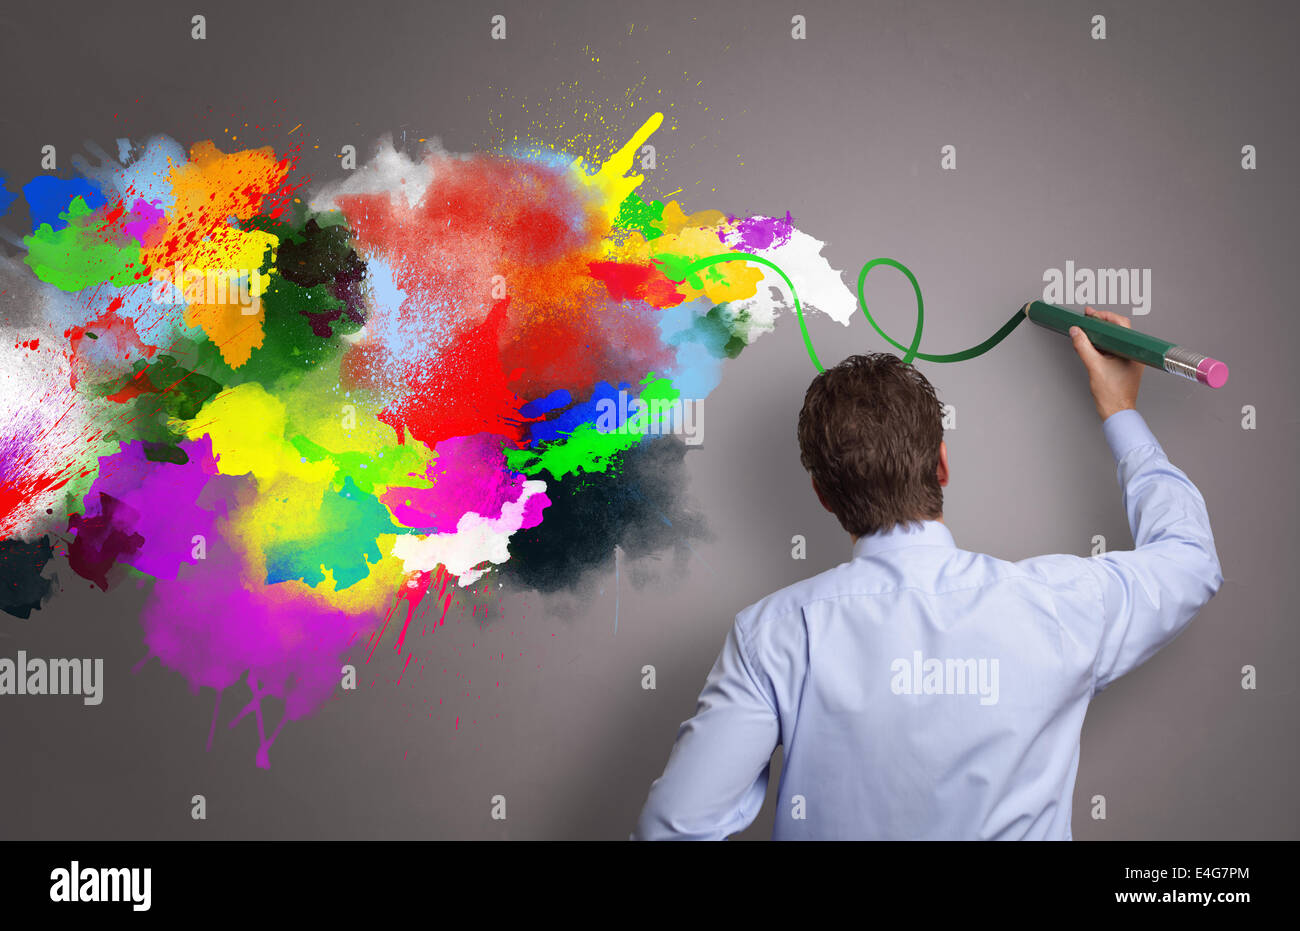 Creative Business Photo Stock